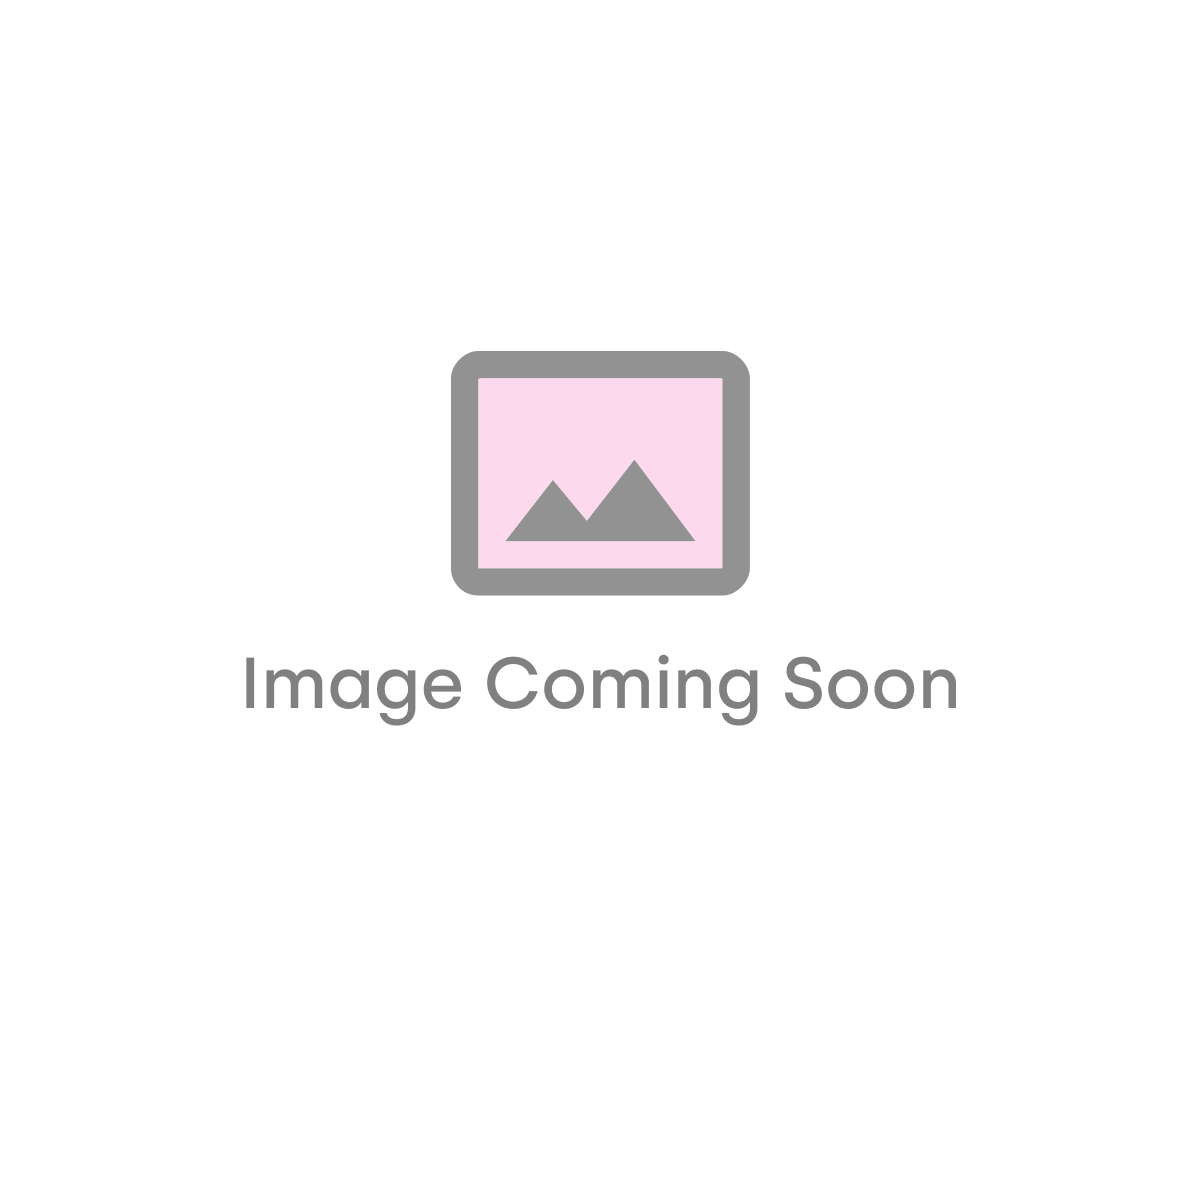 LoCo 800 x 500mm Straight Heated Towel Rail - Chrome (19682)